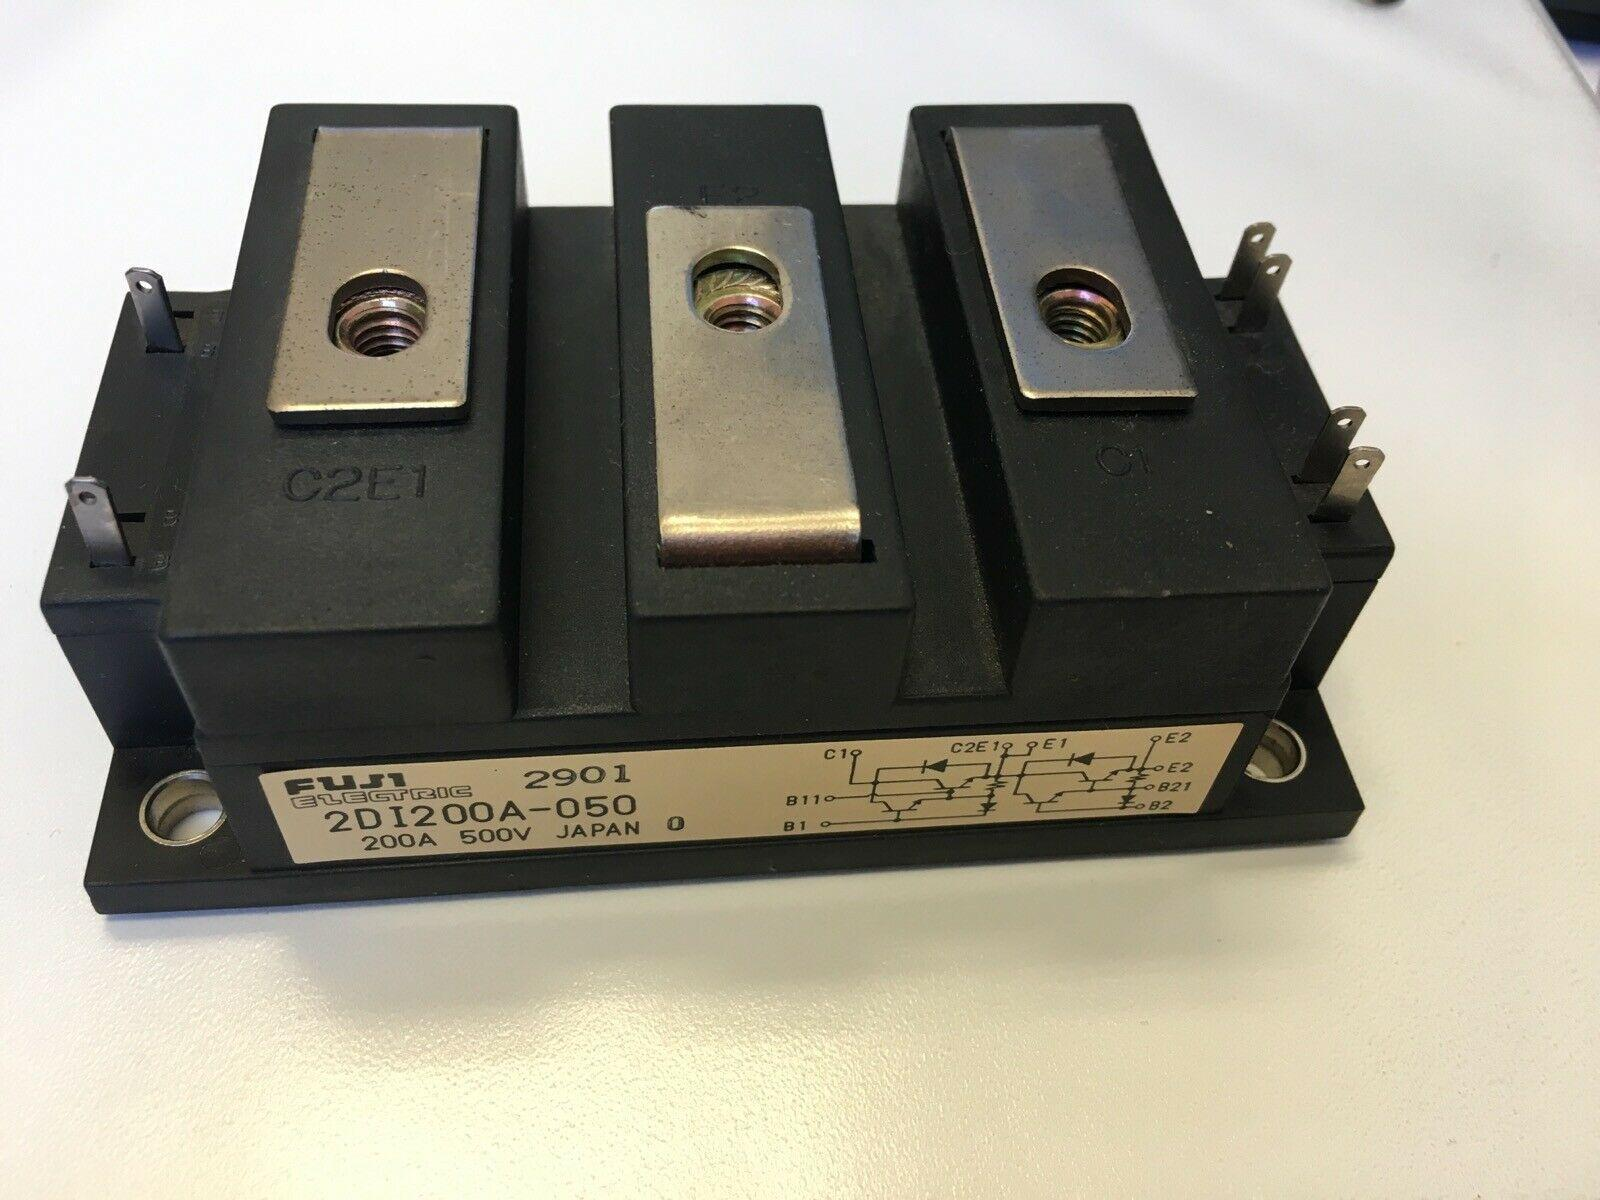 (4) of these modules available. Fuji 2Dl200A Fuji Electric Module.